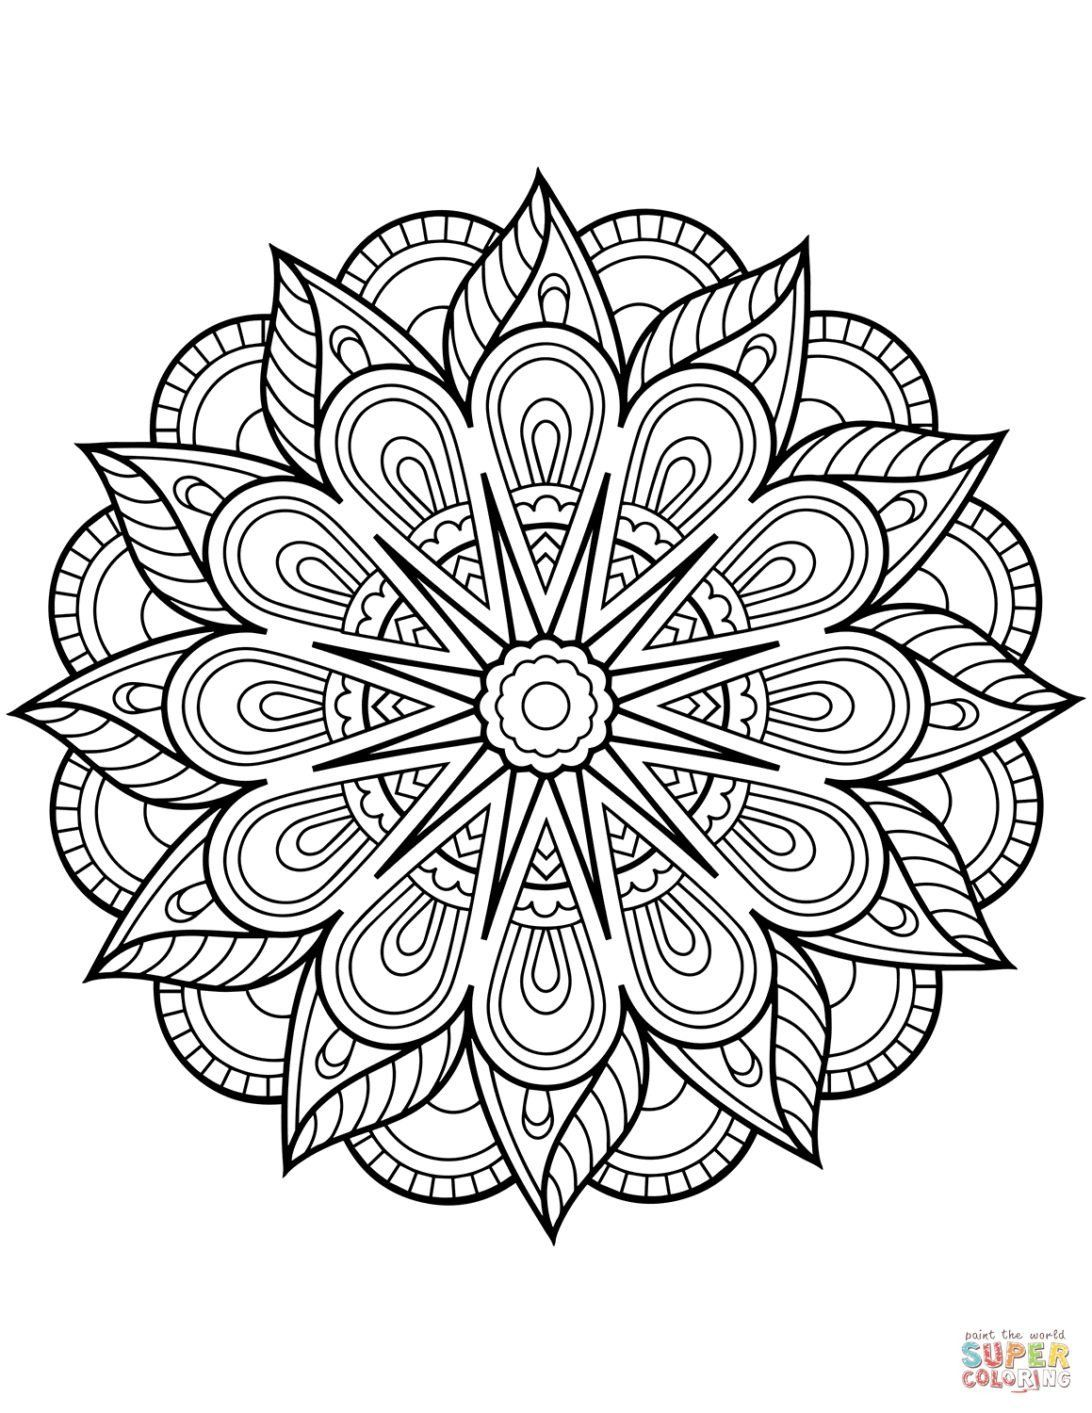 Flower Mandala Coloring Pages Printable 14 Most Class Mandala Coloring Page Doodle Royal In 2020 Mandala Coloring Pages Printable Coloring Book Coloring Pages To Print